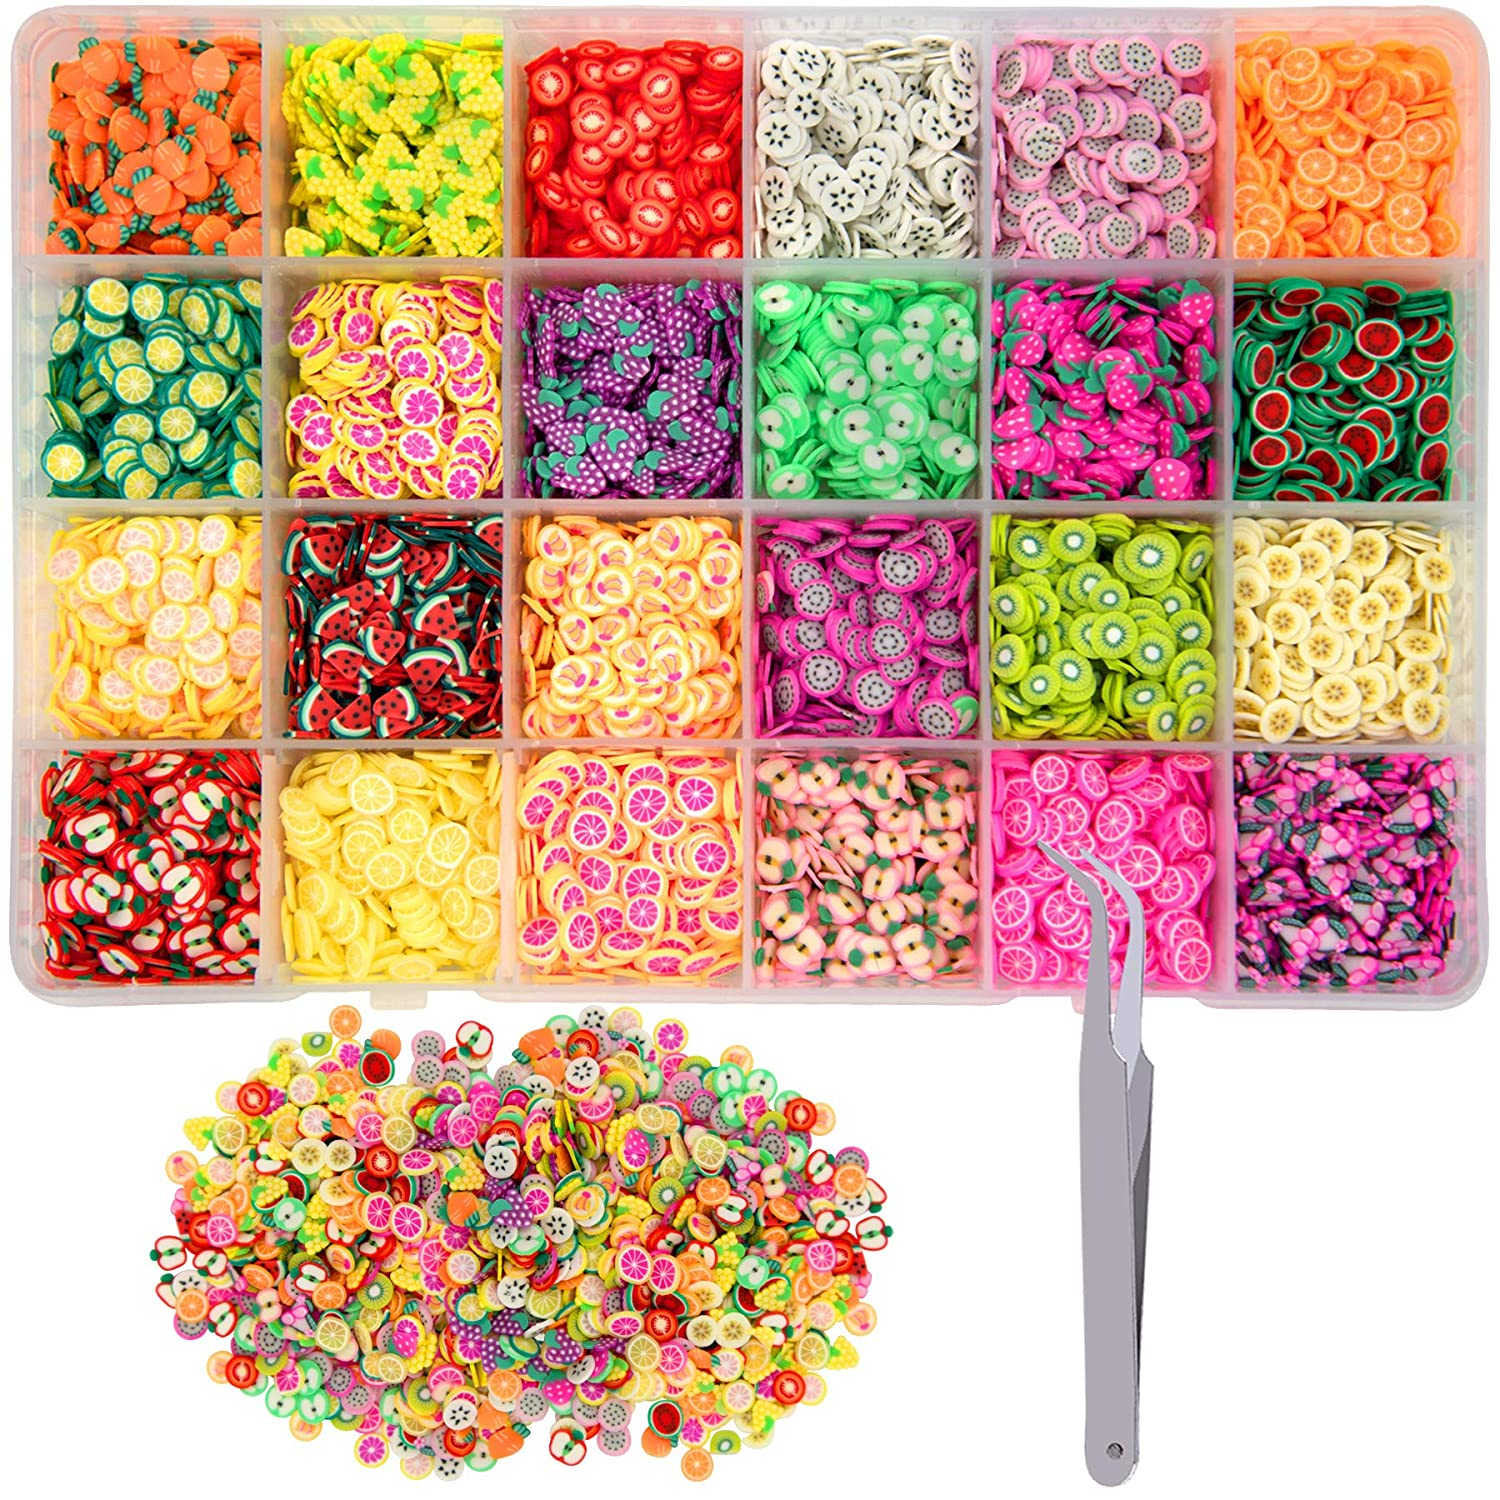 Duufin 16800 Pcs Nail Art Fruit Slices Colorful 3D Fruit Nail Slices with a Tweezers for Art DIY, Slime Making, Craft, Decoration